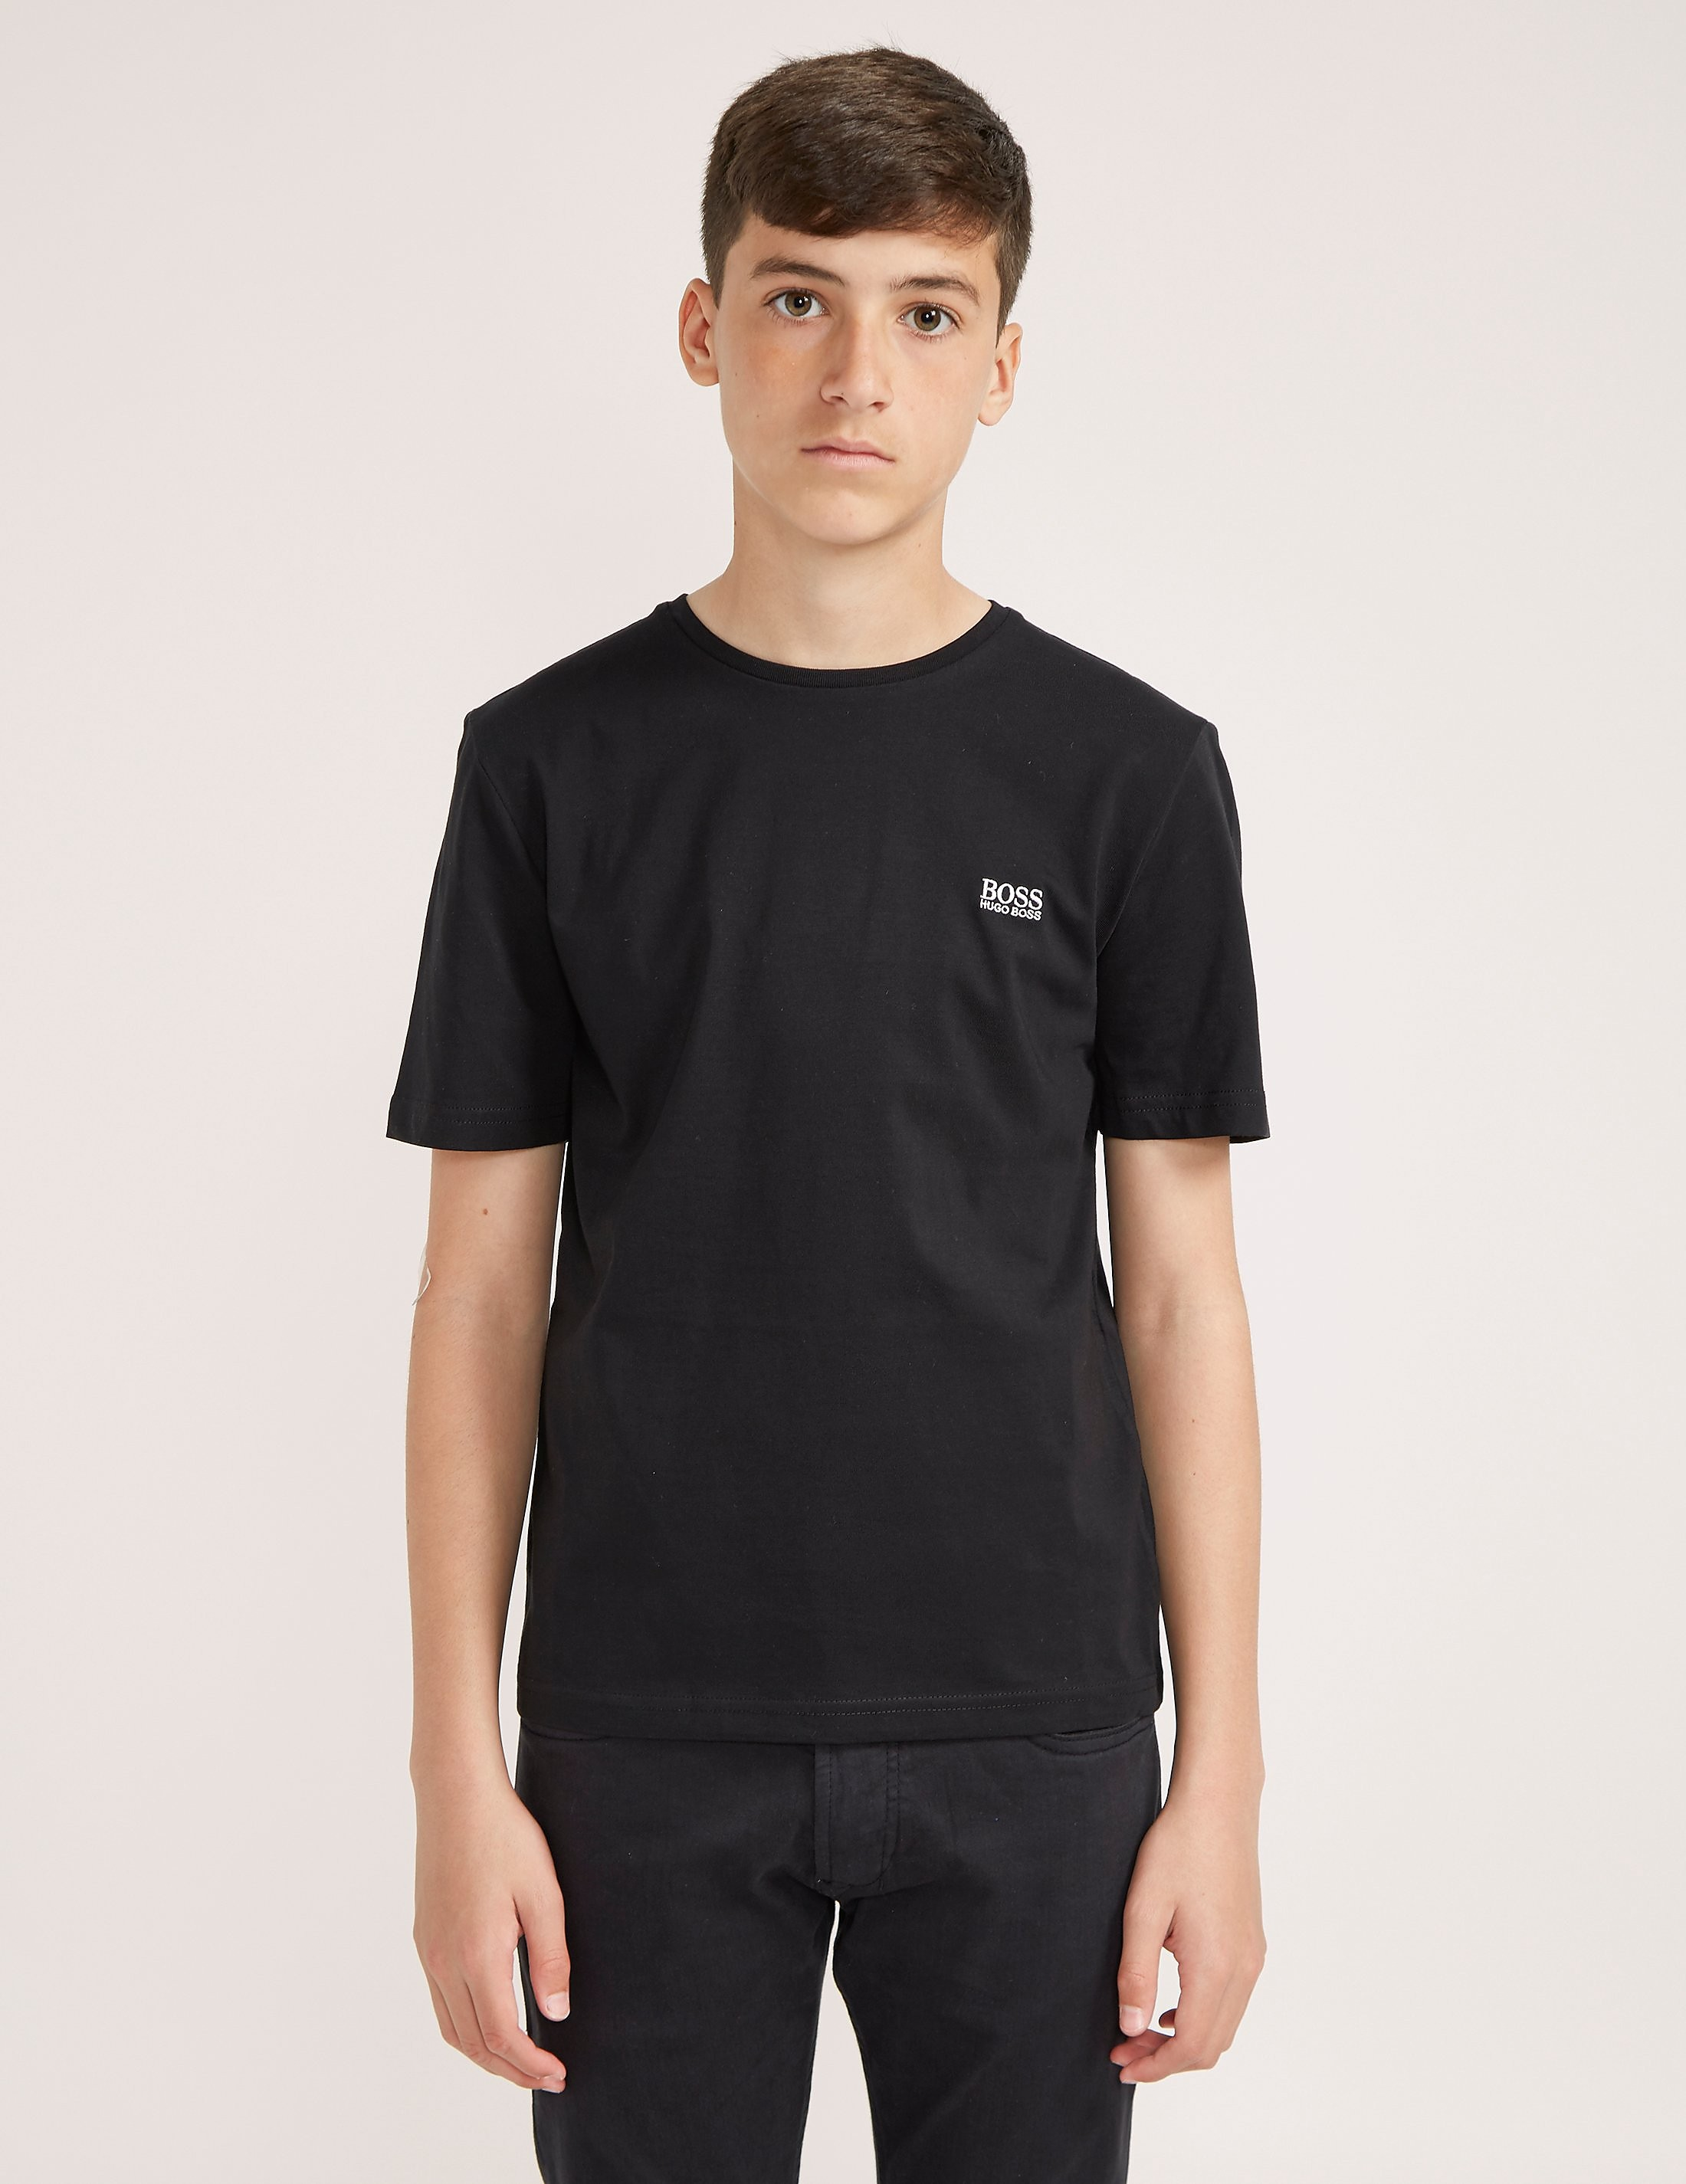 BOSS Short Sleeve Logo T-Shirt